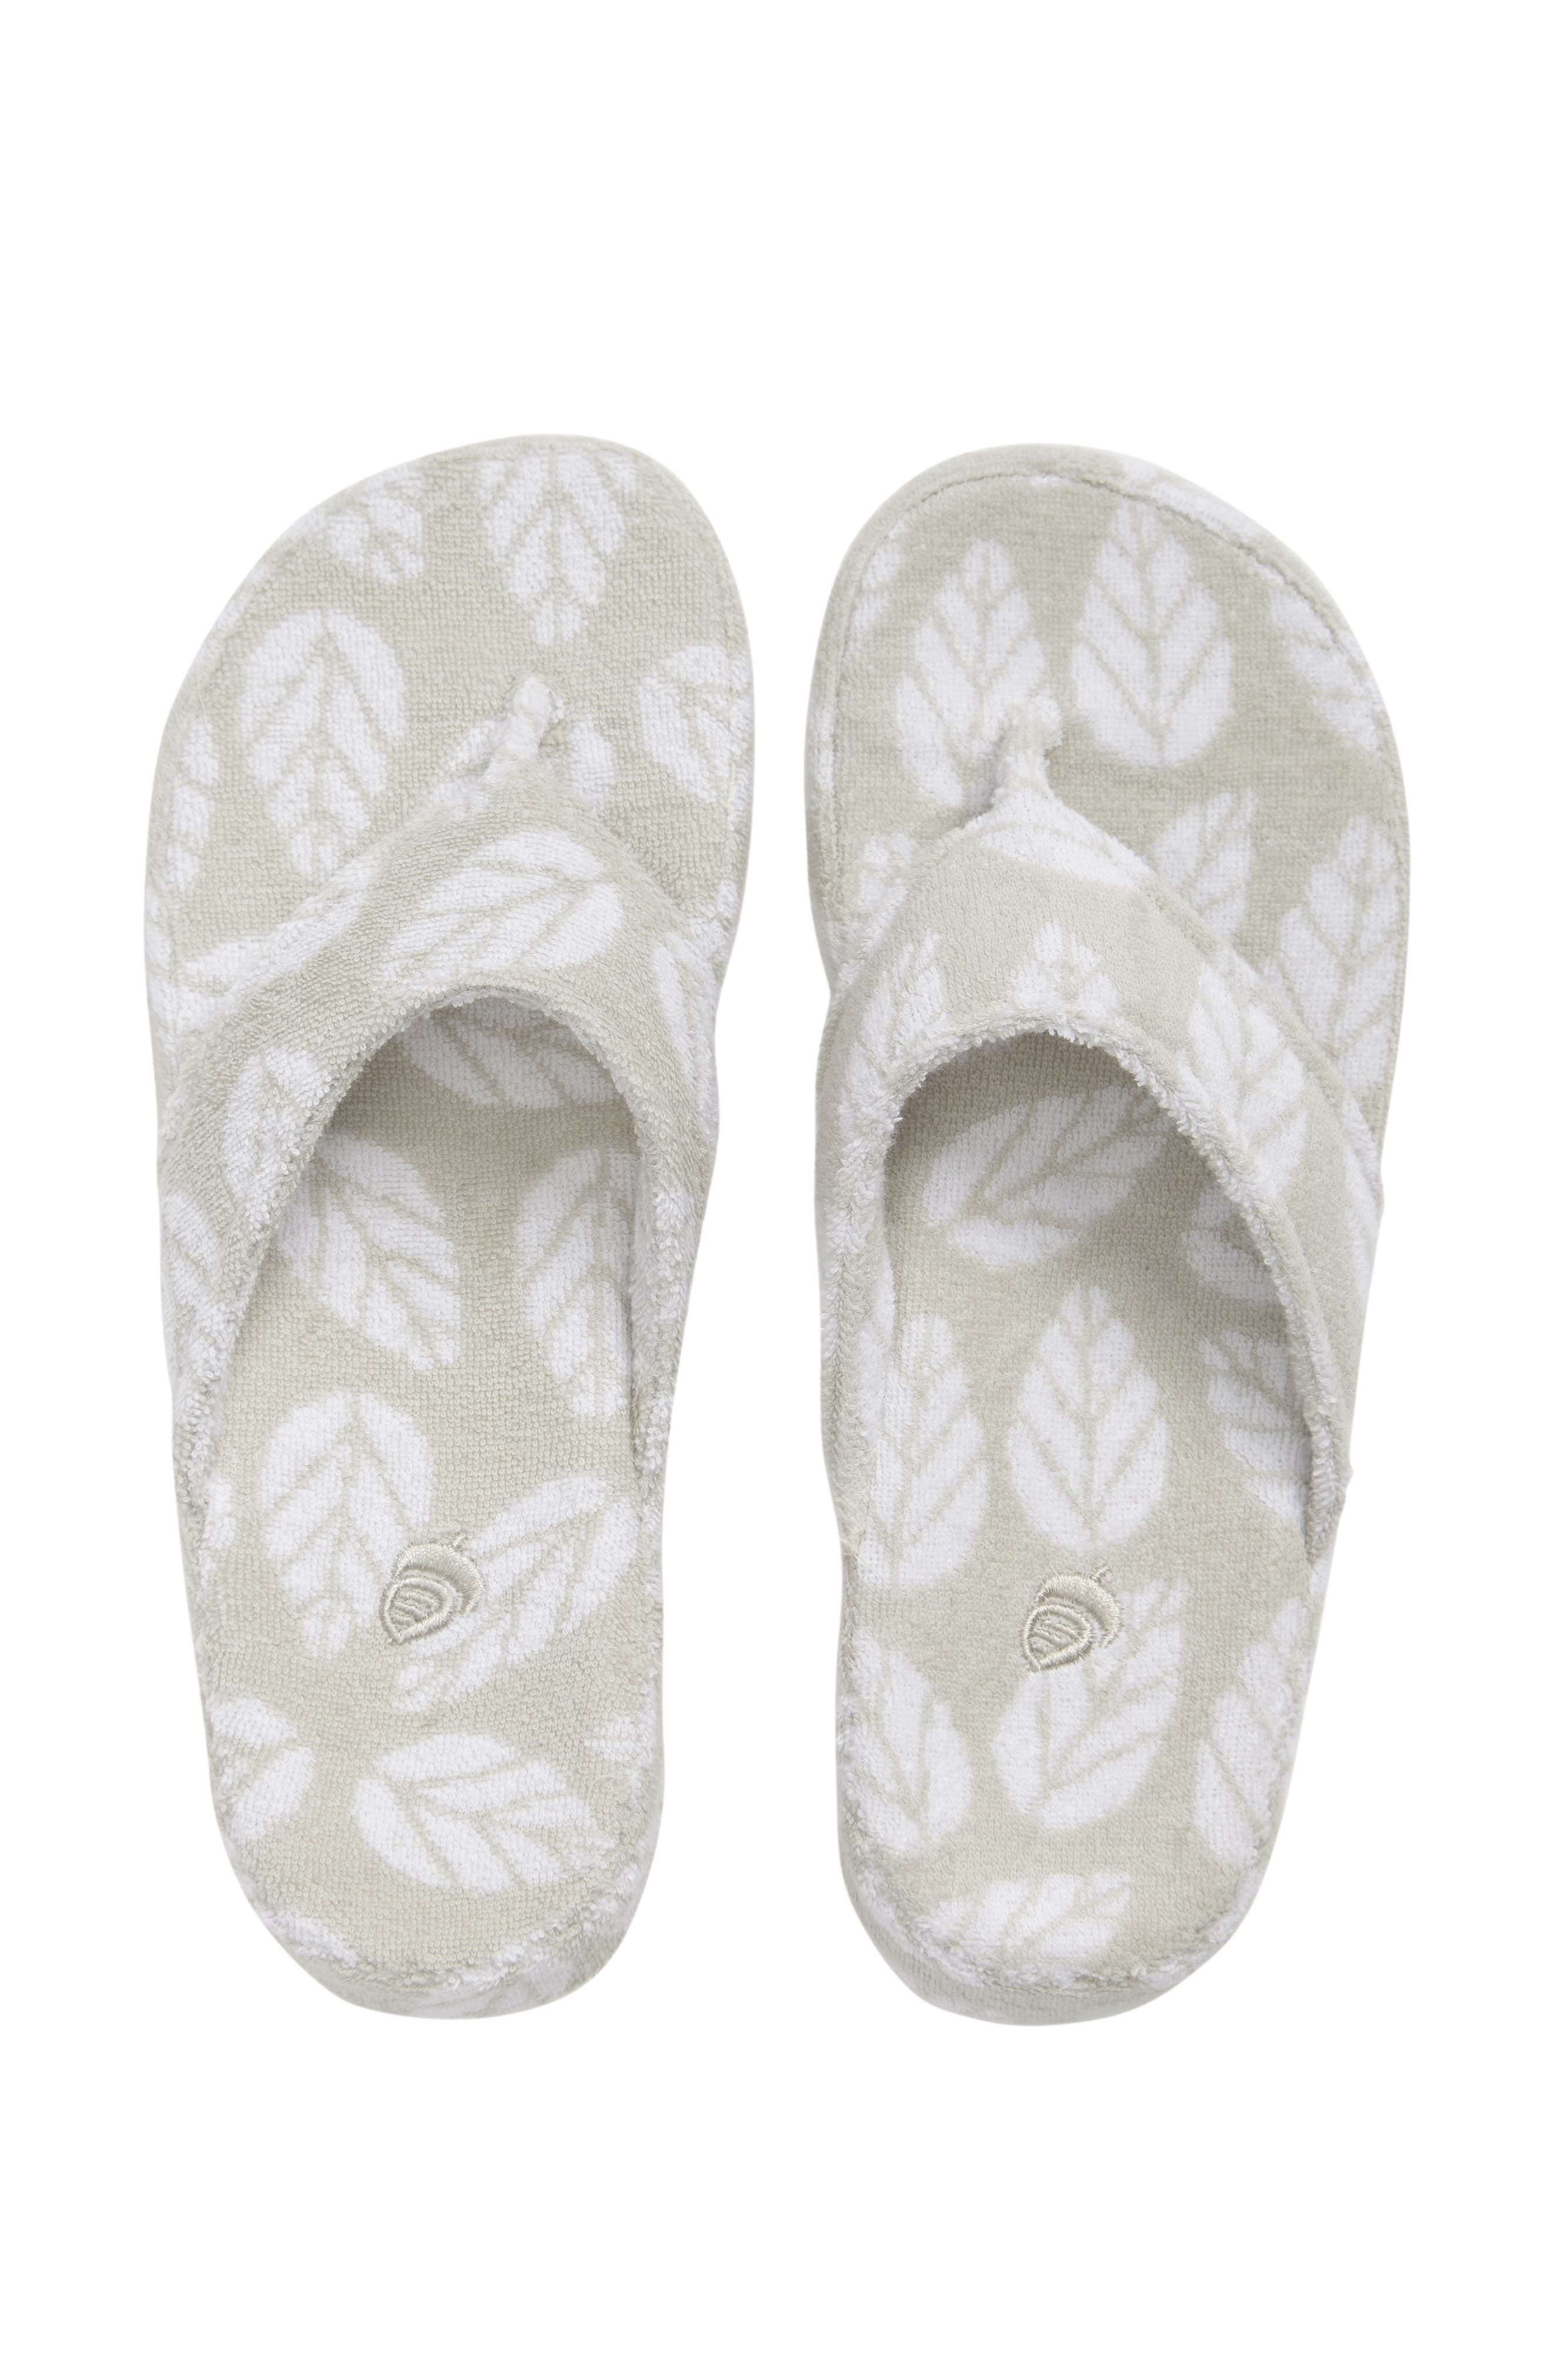 Alternate Image 1 Selected - Acorn Summerweight Spa Slipper (Women)